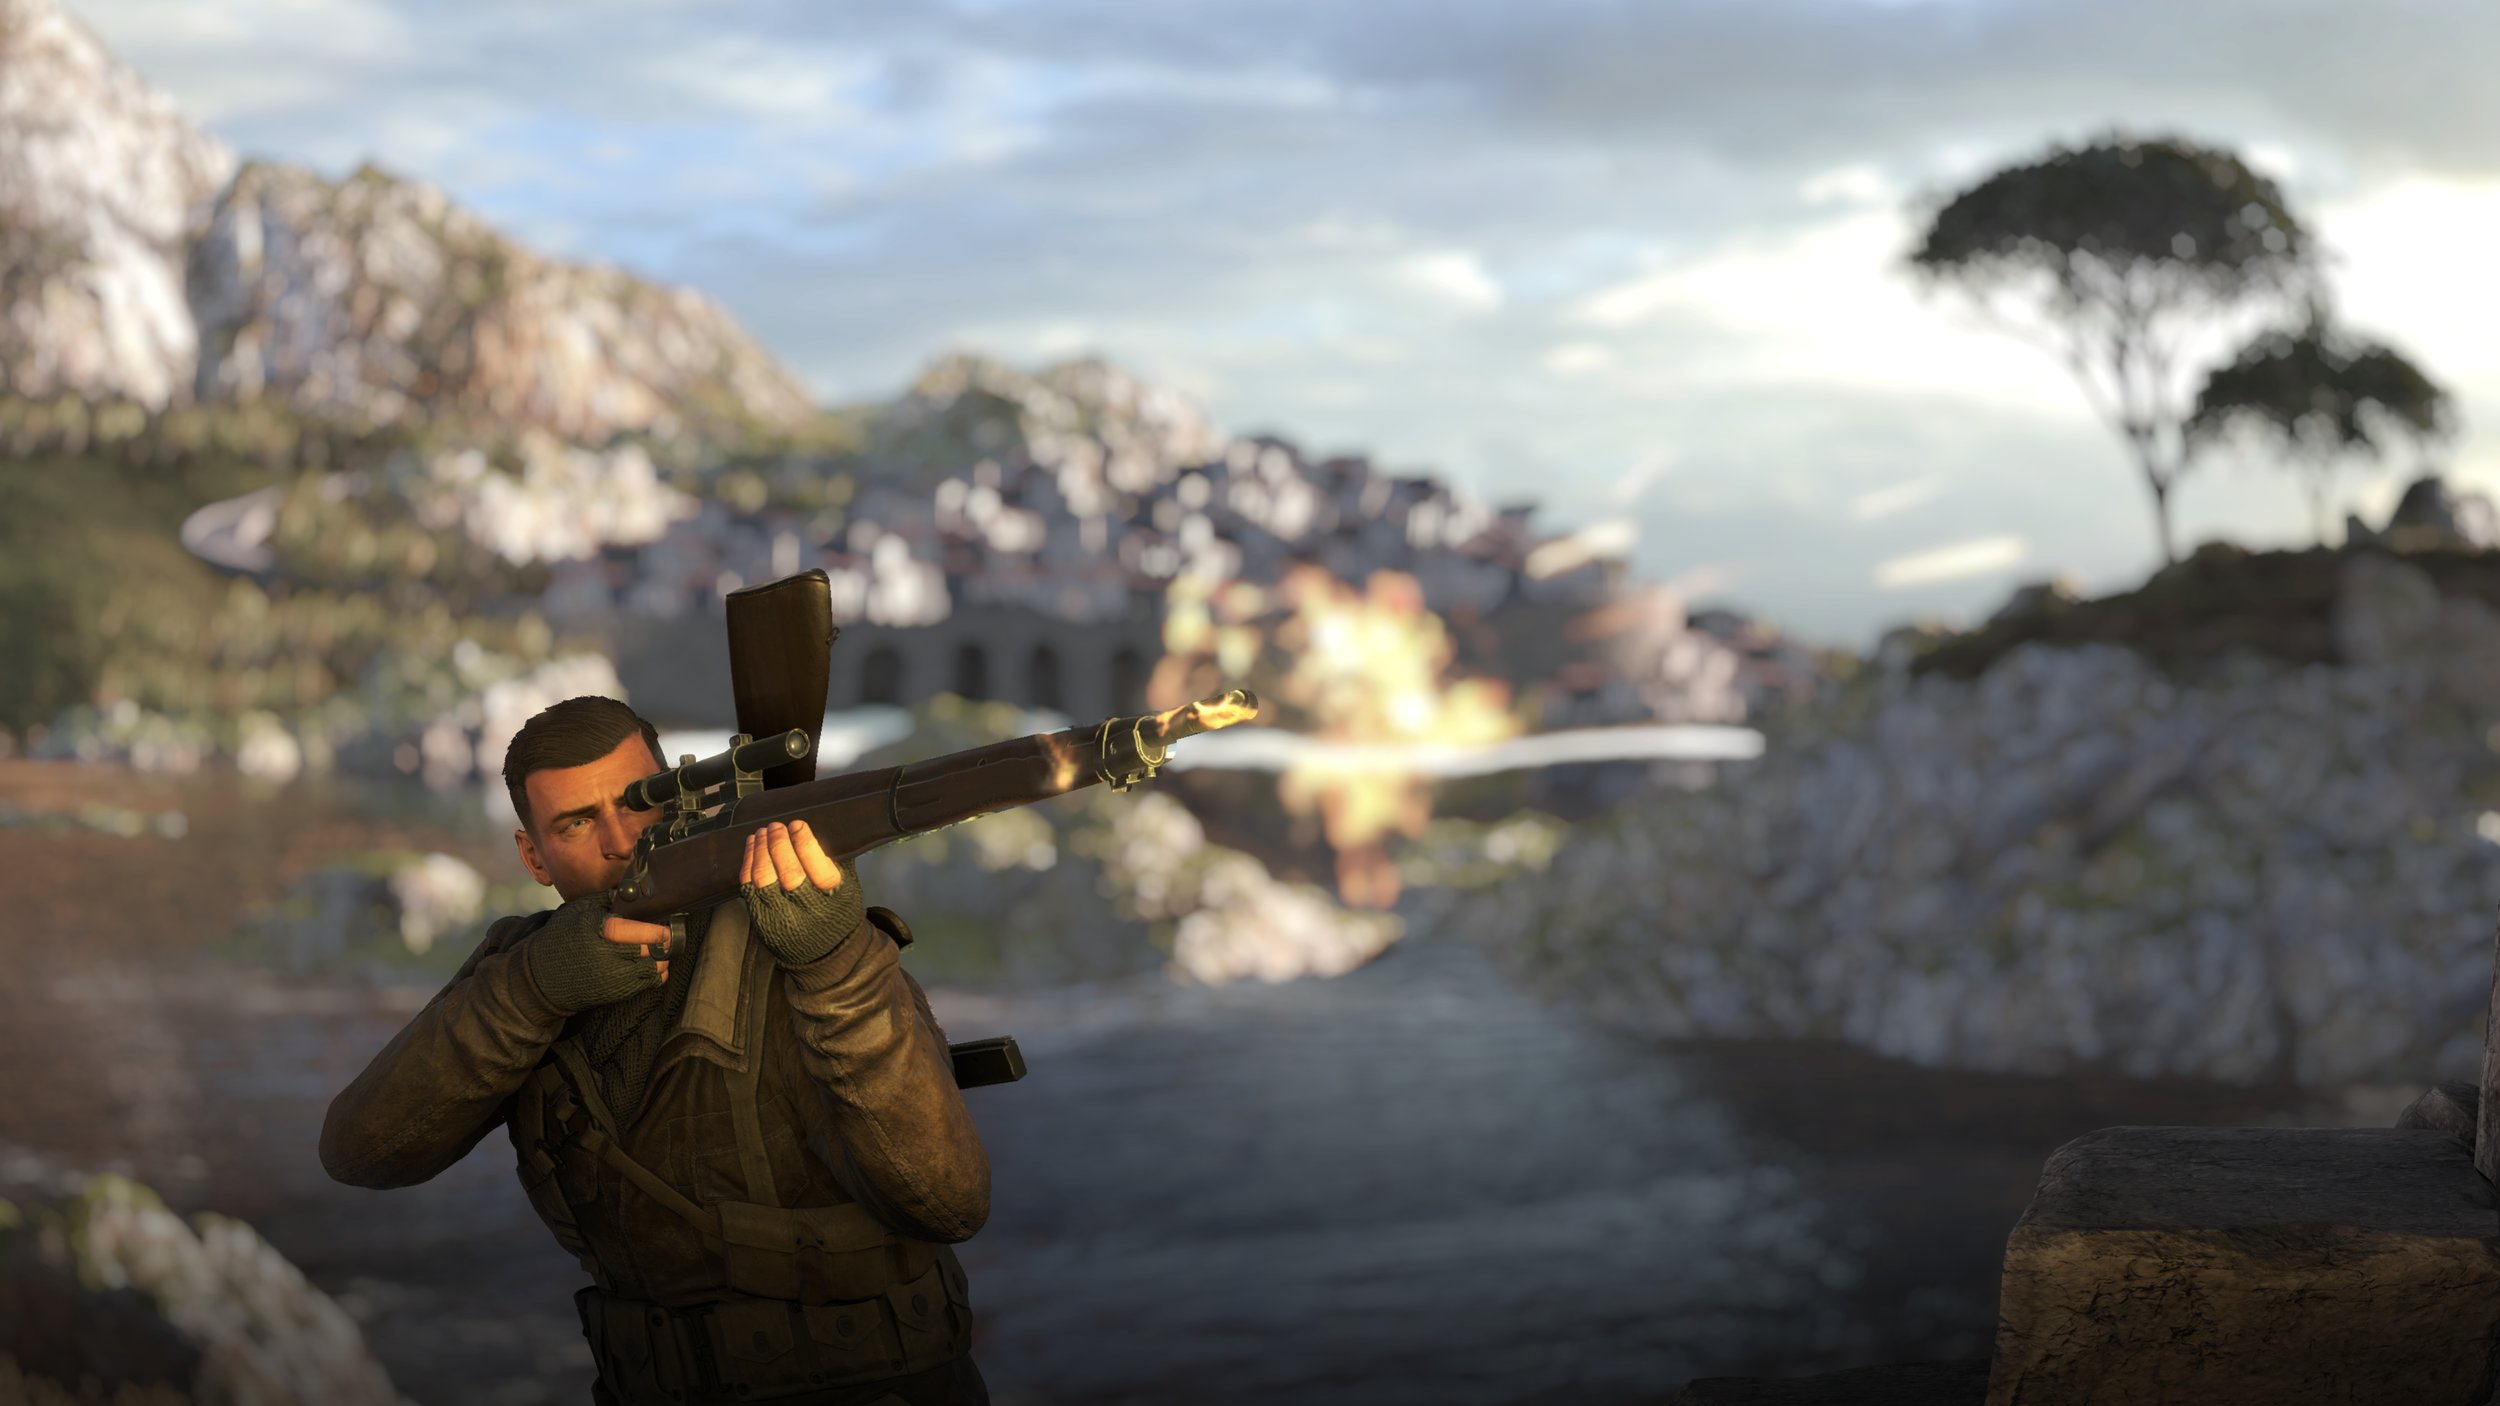 You haven't heard stunning sound until you pair SNIPER ELITE 4 with a solid set of speakers and a quality sub.